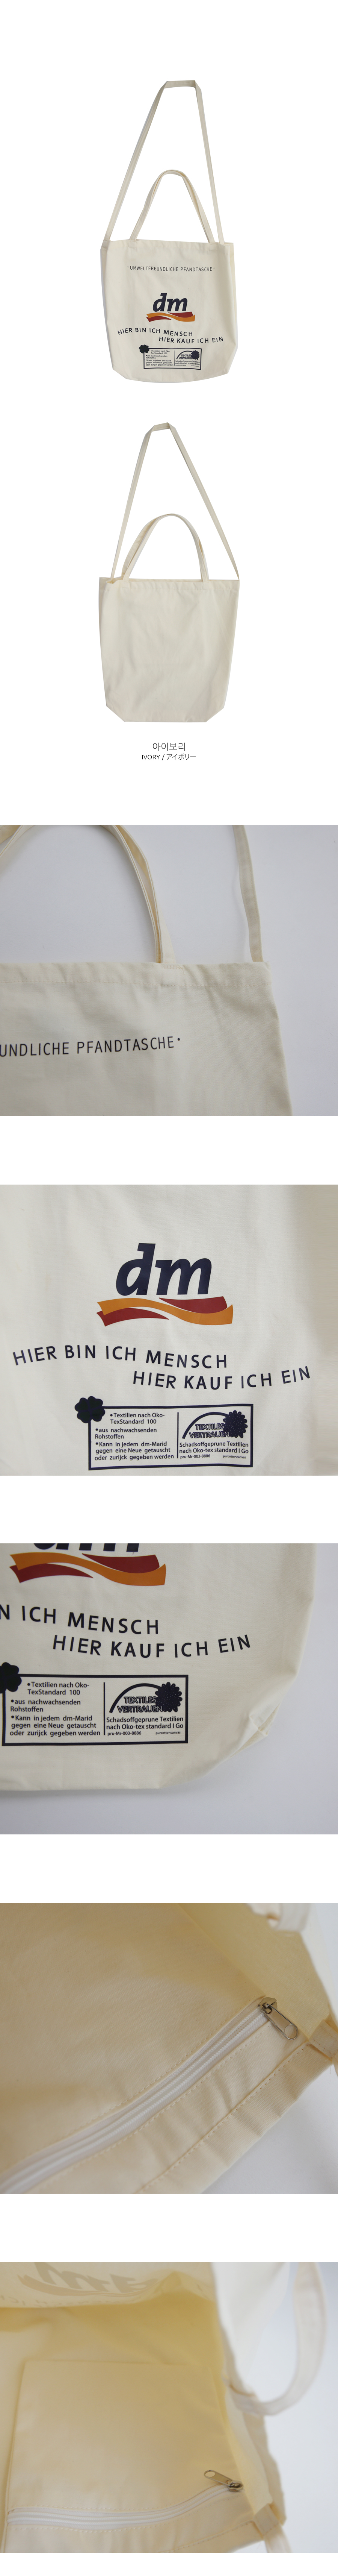 Direct eco (bag)